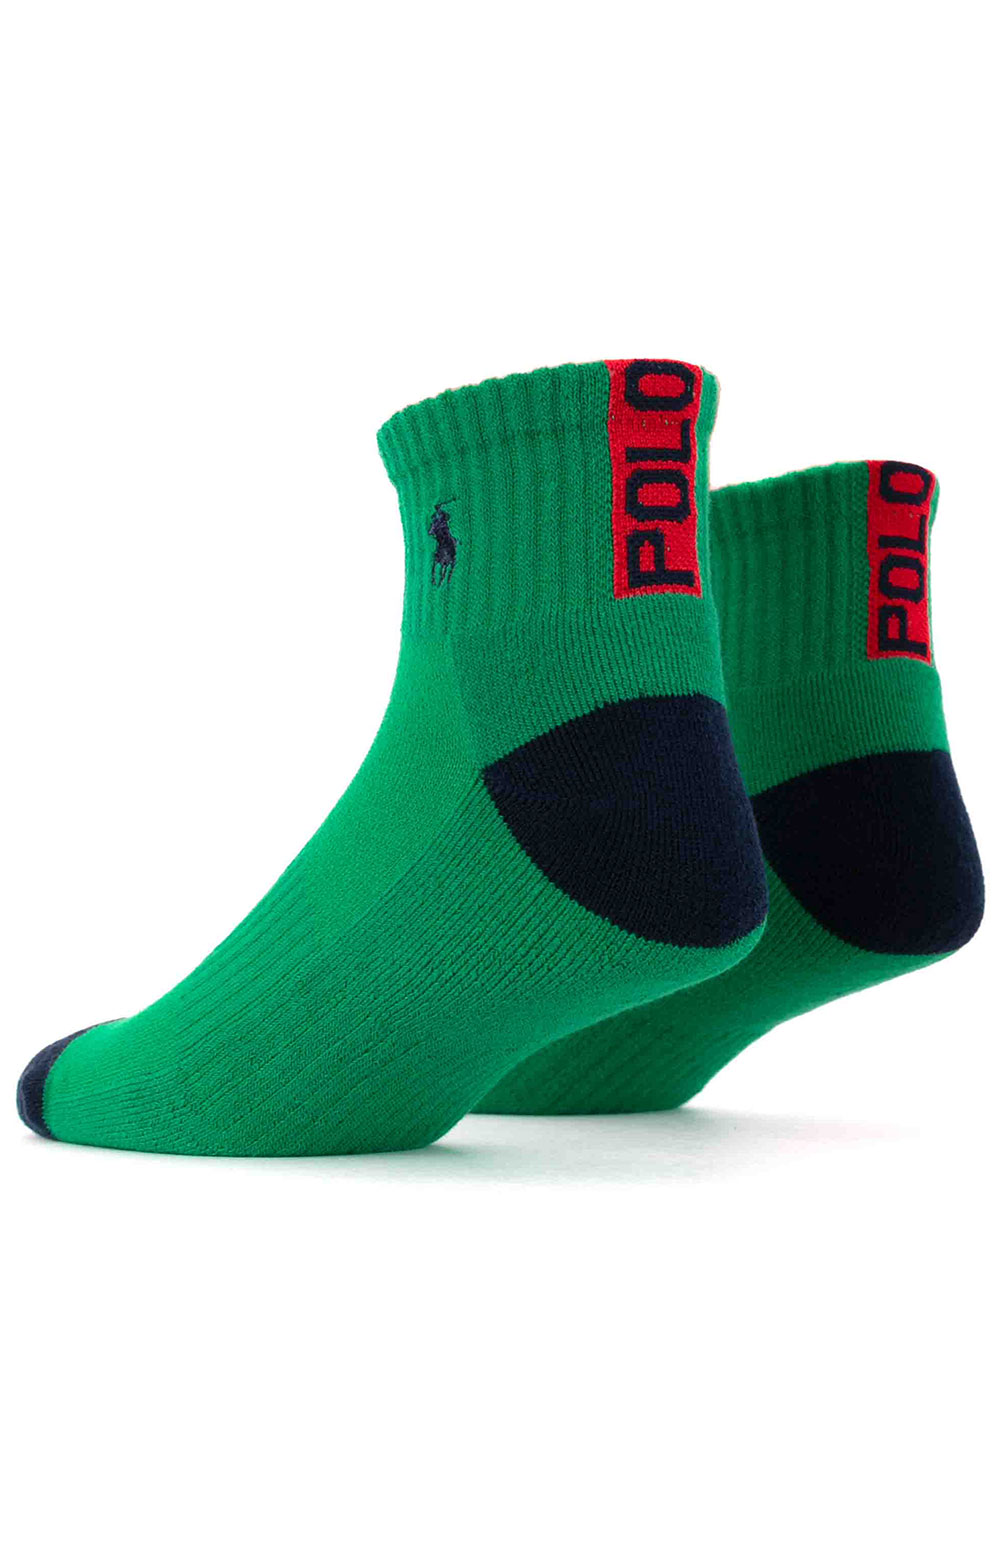 Colorblock Cushioned Quarter Socks - 6 Pack 7